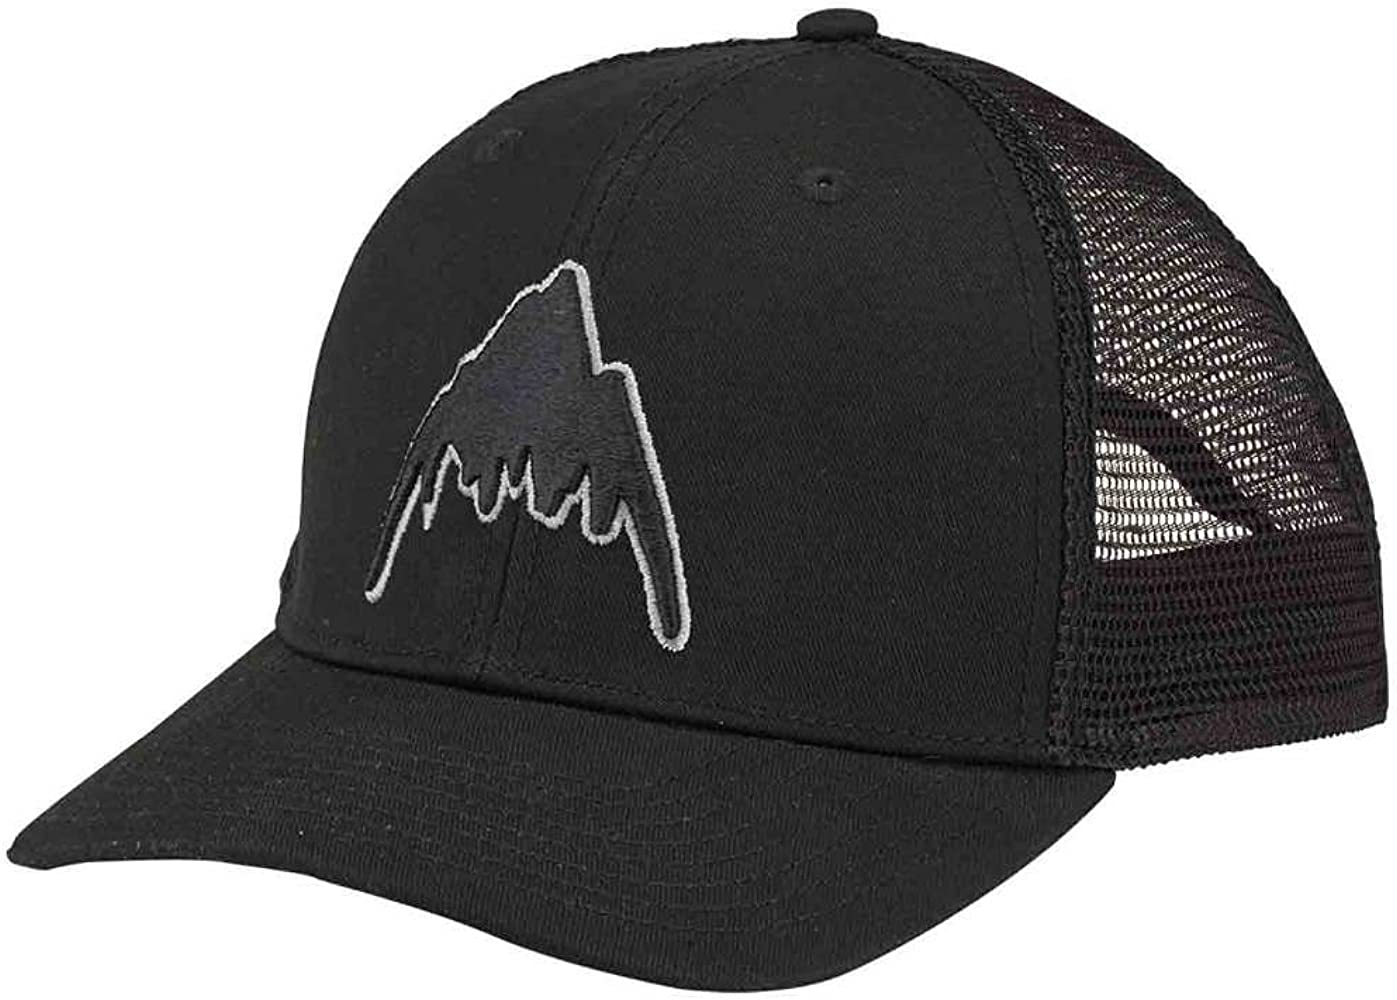 Burton Gorras Harwood True Black Trucker: Amazon.es: Ropa y accesorios